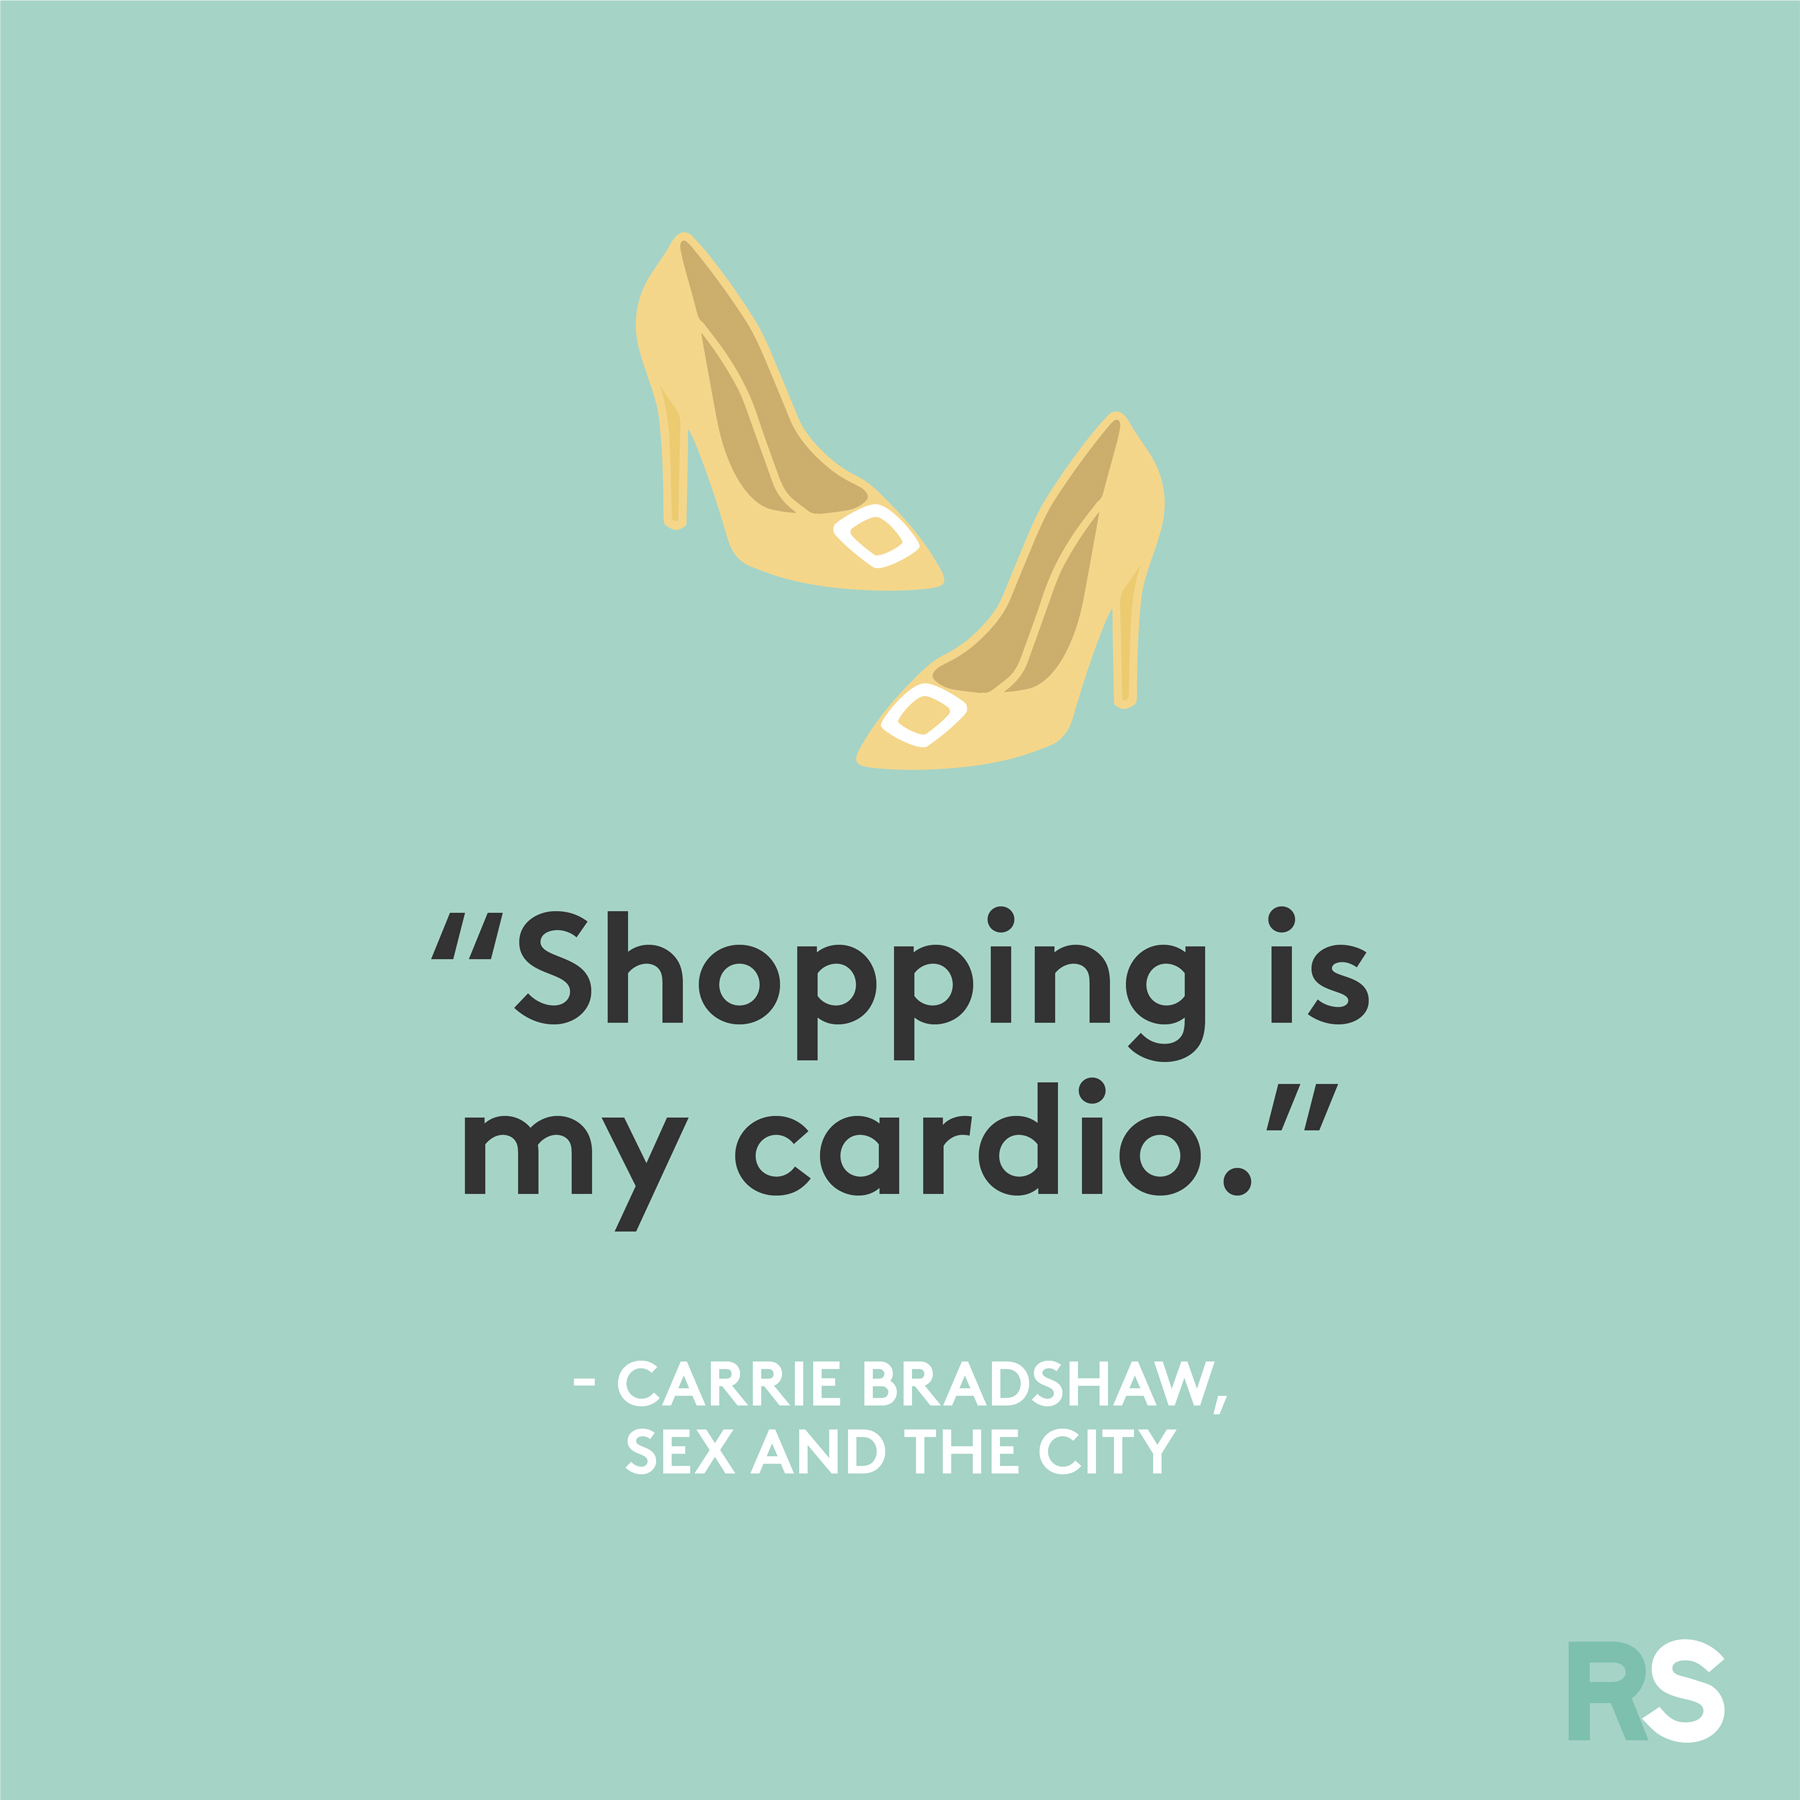 Black Friday funny quotes, sayings - Carrie Bradshaw, Sex and the City